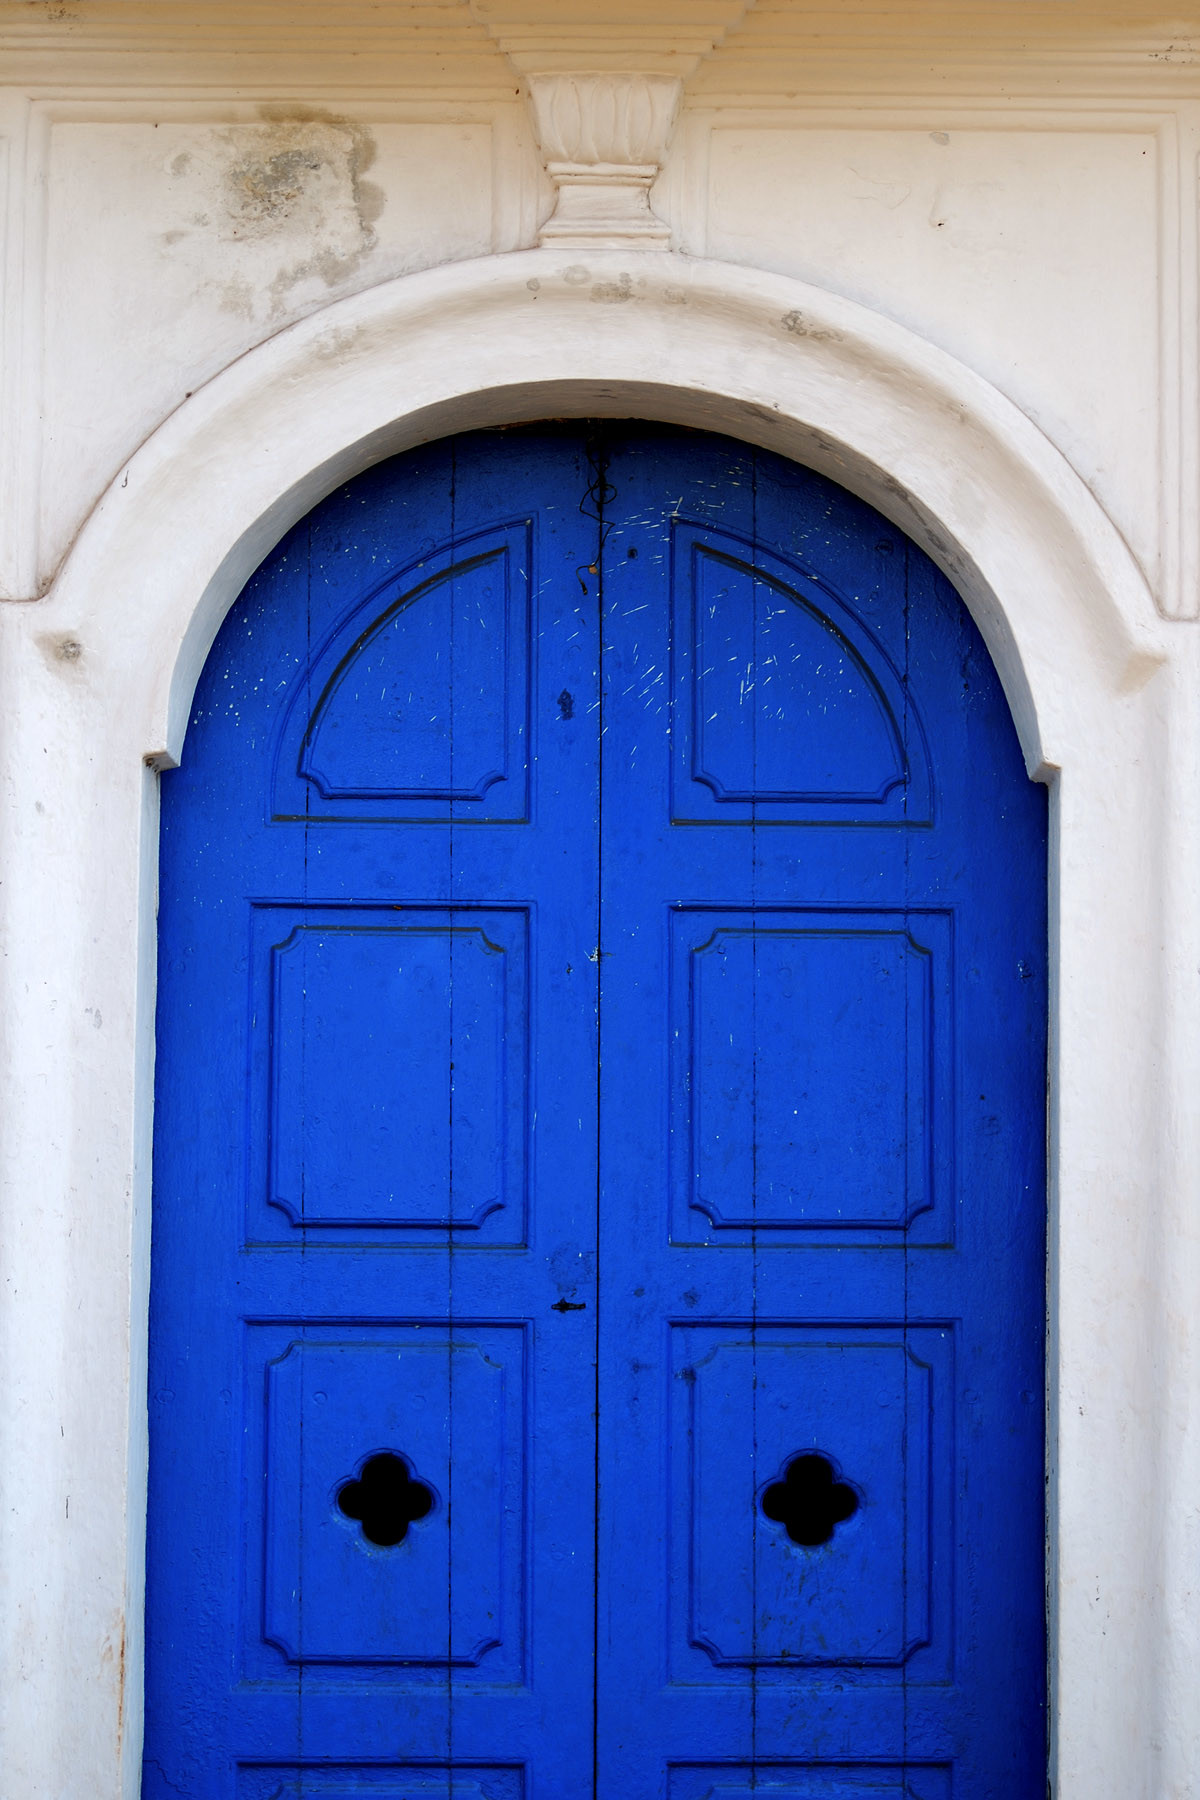 The Blue Door by Ajay Rajgarhia, Image Photography, Digital Print on Archival Paper, Blue color